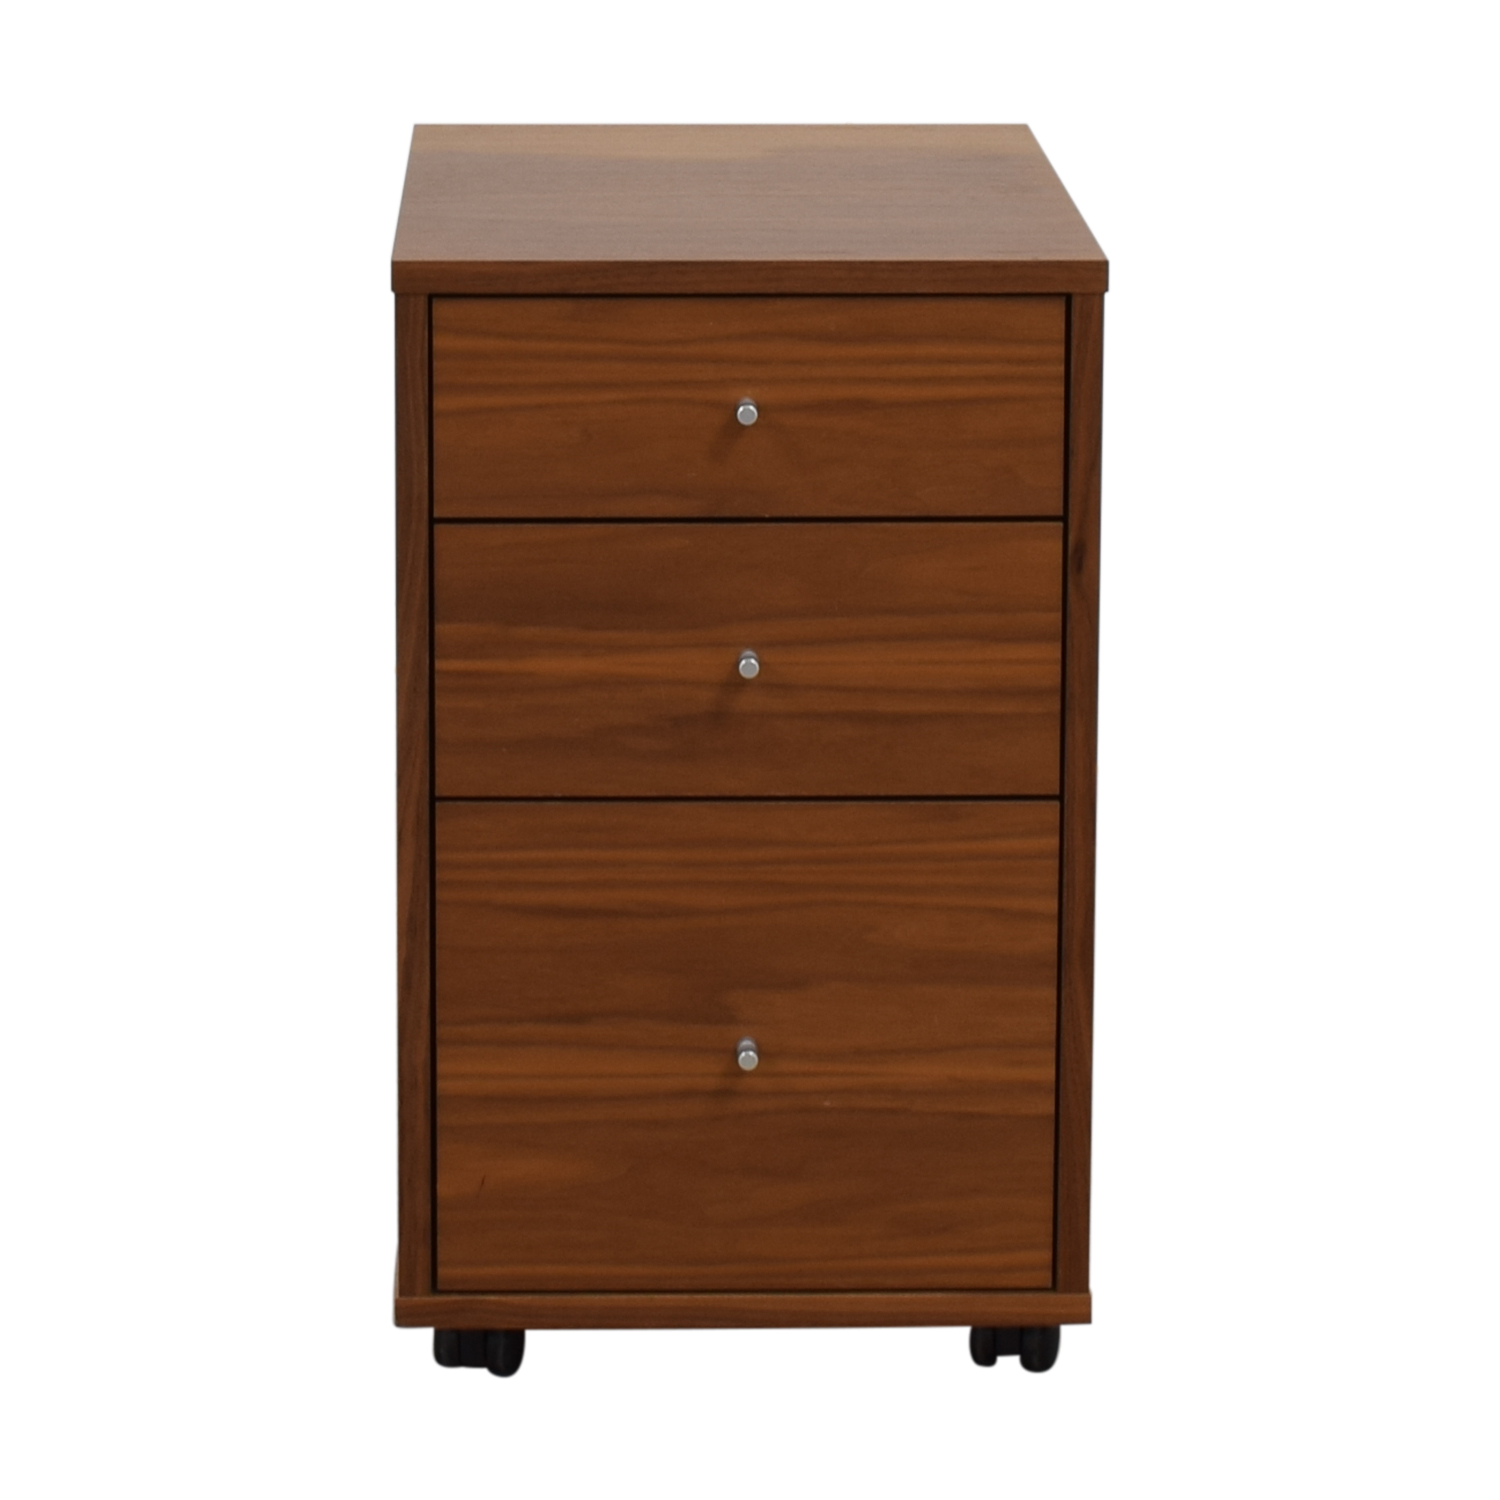 Room & Board Room & Board Sequel Rolling Three-Drawer File Cabinet